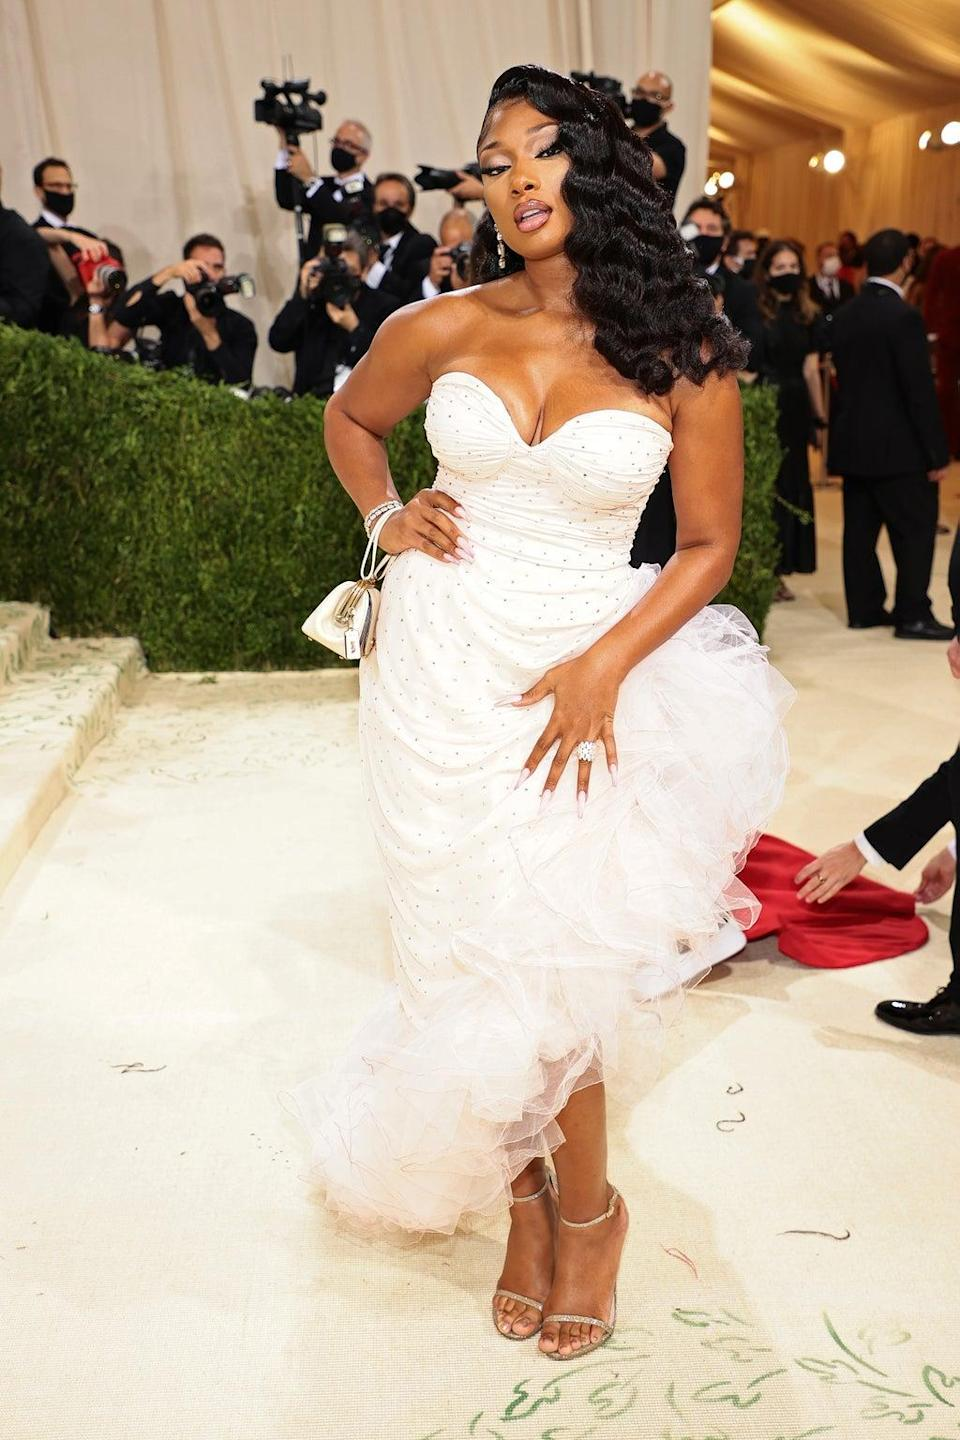 The rapper wore a white gown by Coach. (Getty)